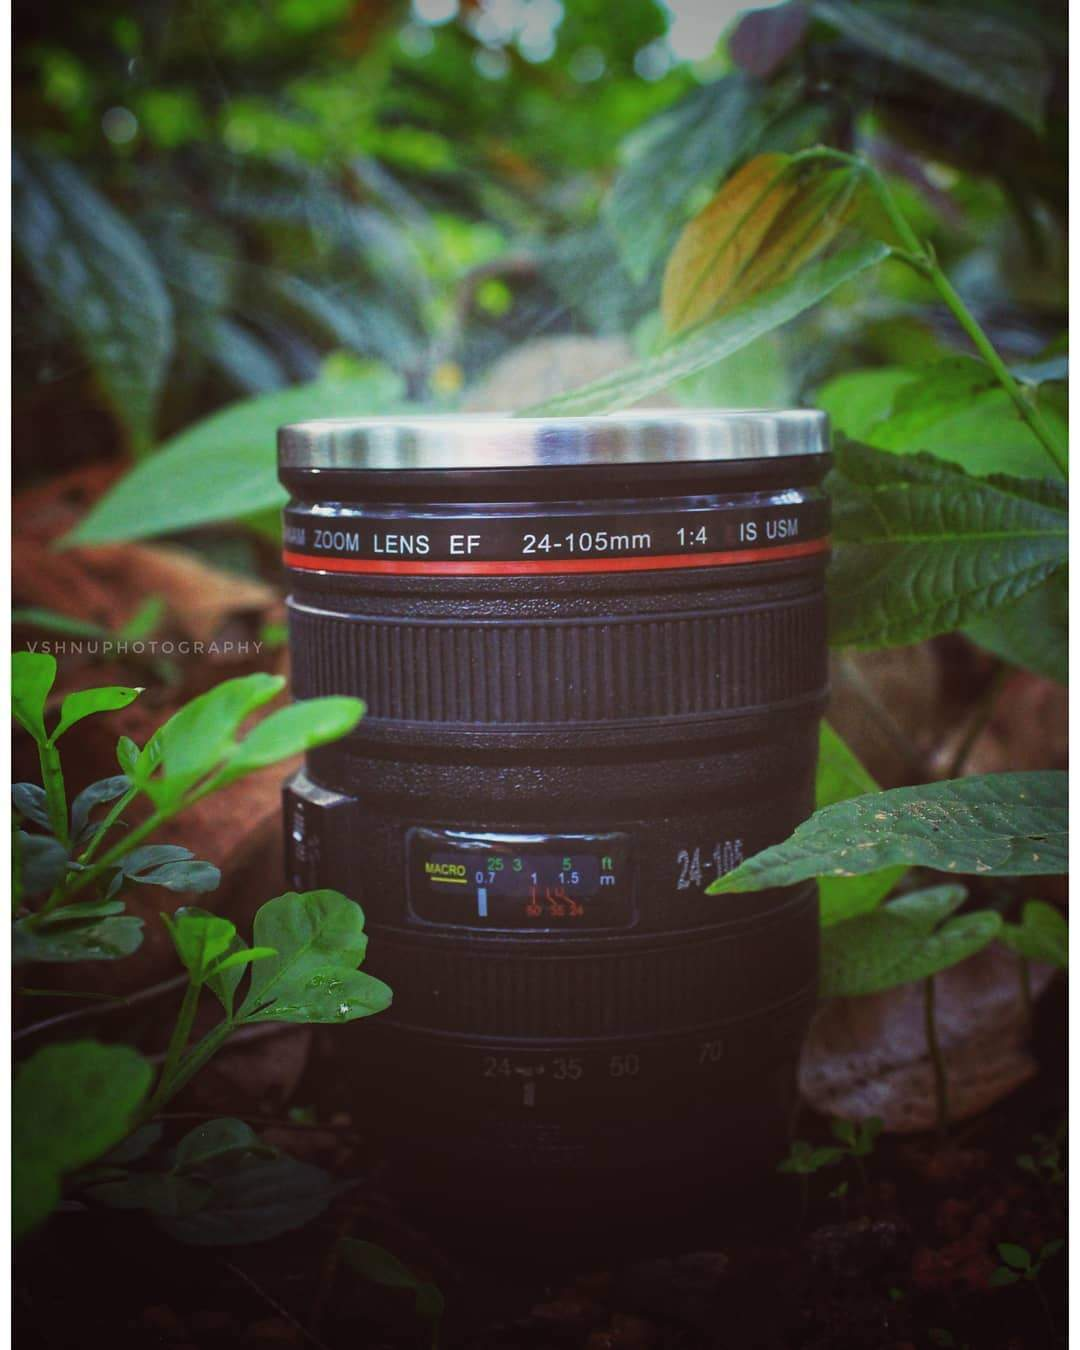 New Arrival! Camera Lens Coffee Mug, Stainless Steel Thermos, Sealed & Retractable Lids!